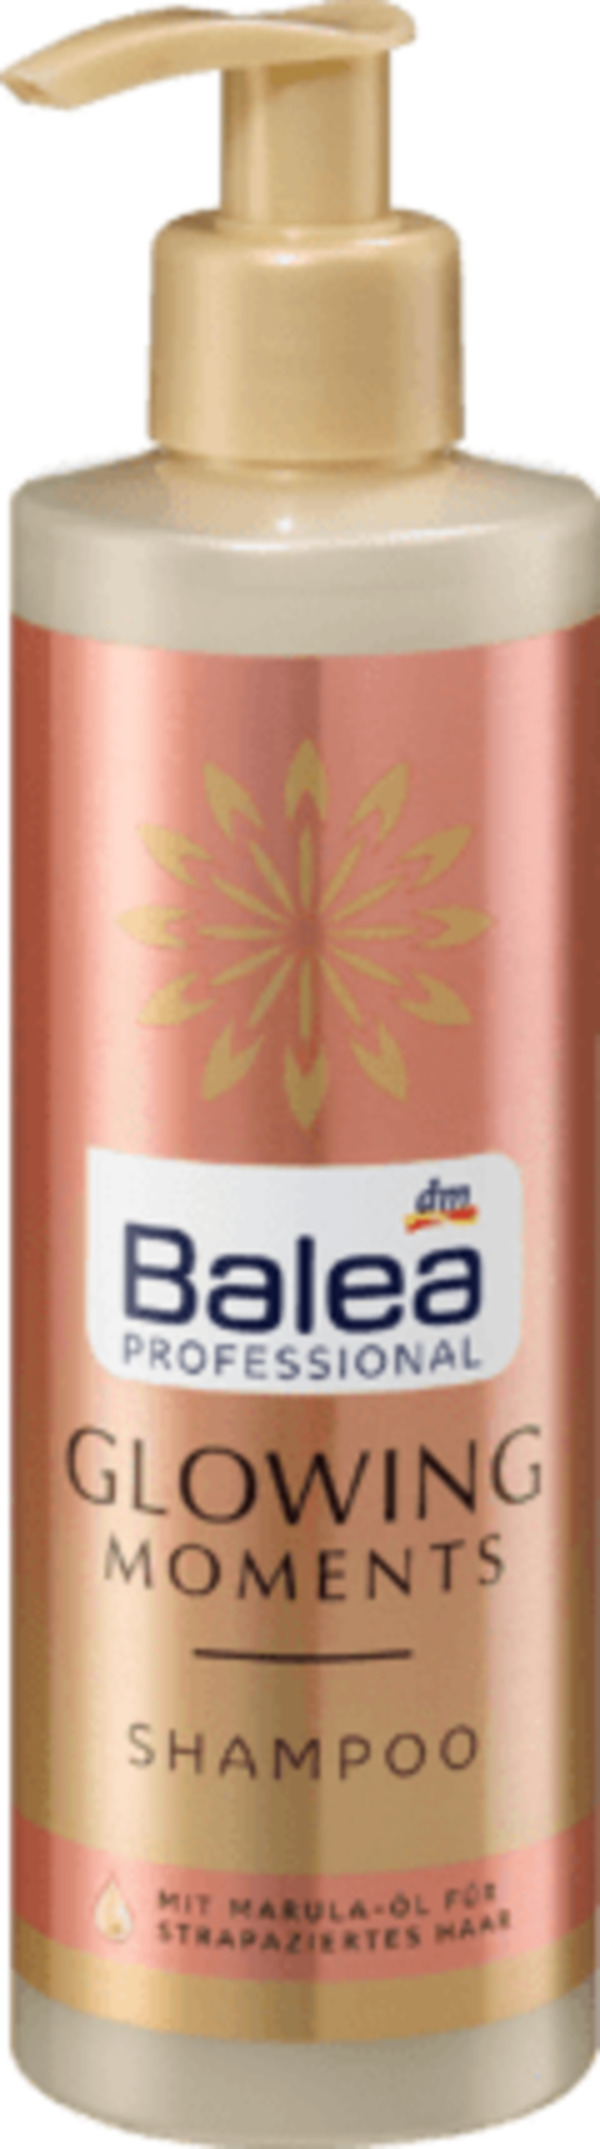 Balea Shampoo Glowing Moments